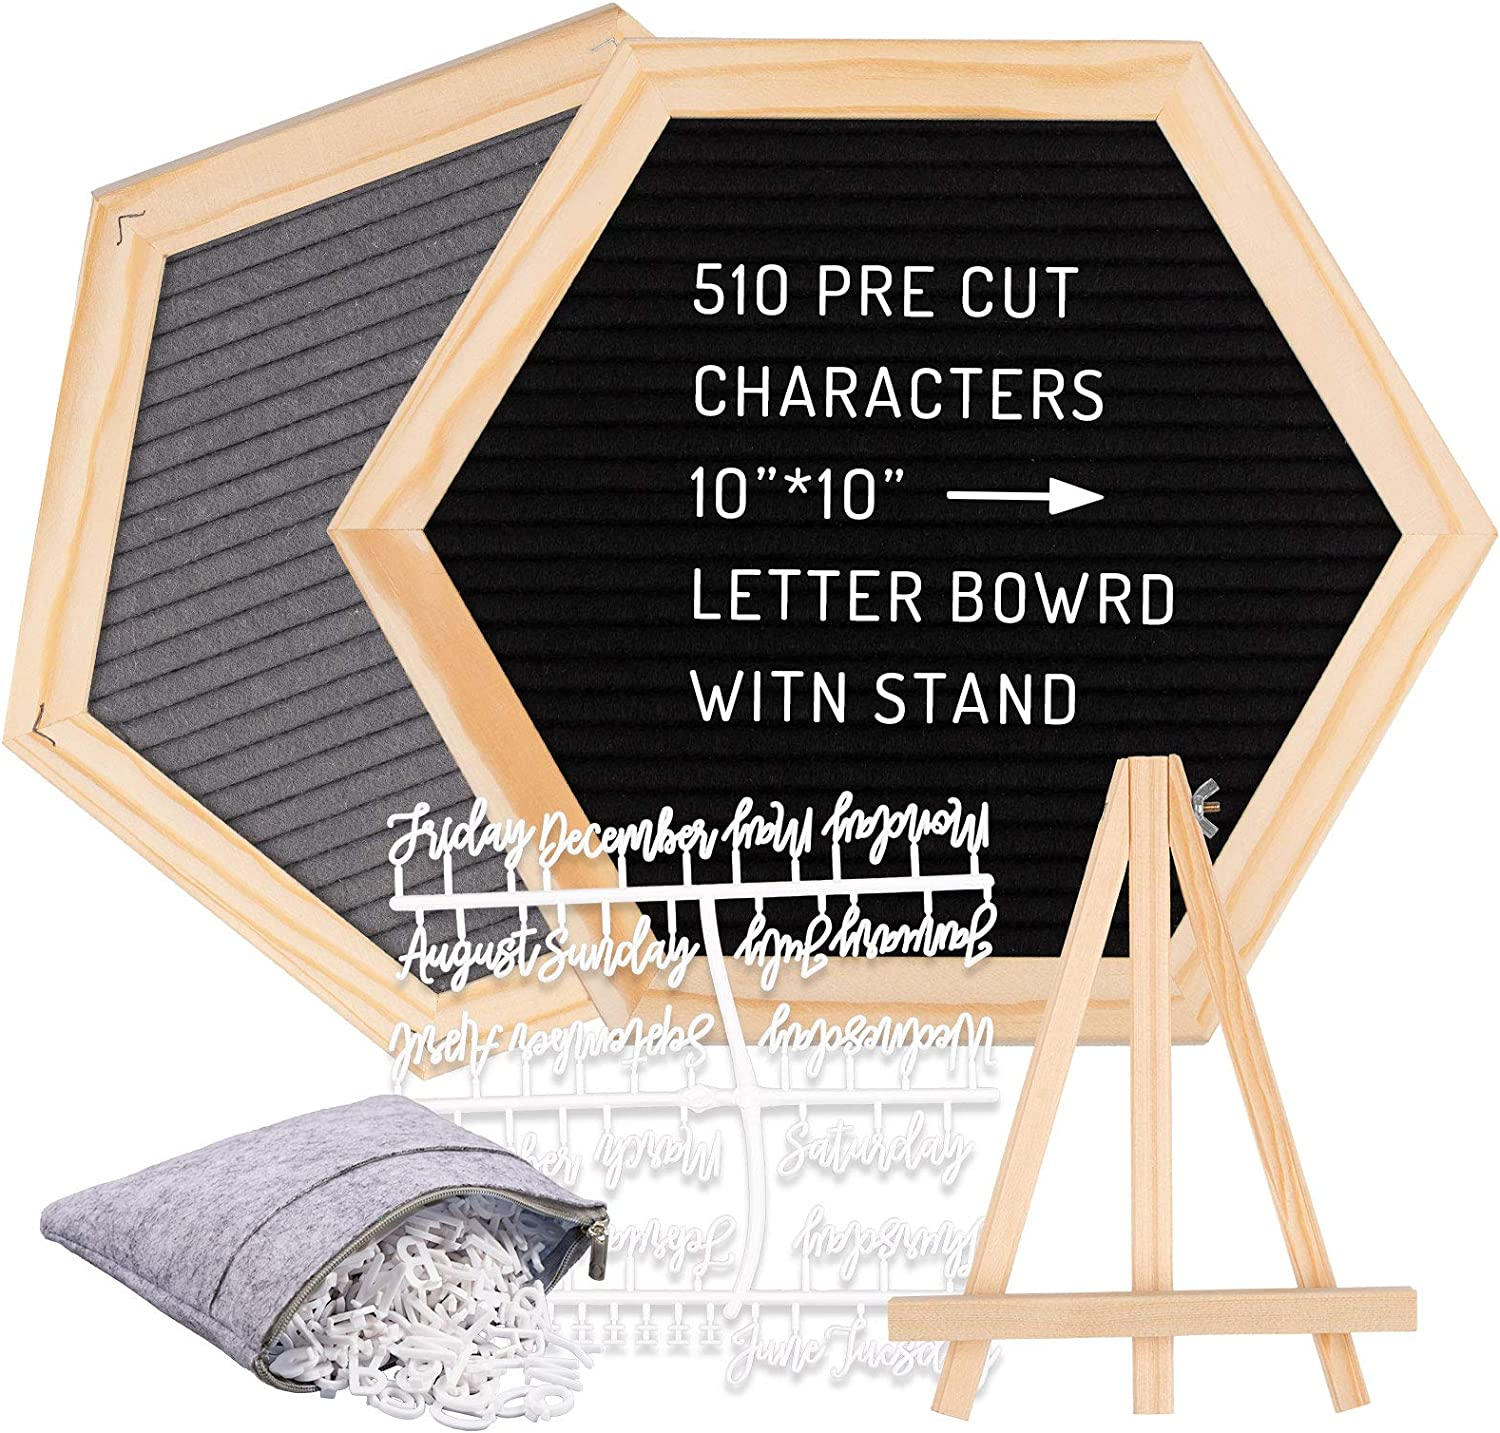 Whaline Double Sided Felt Letter Board Kit with 510 Letters Month Wooden Stand Felt Bag Felt Letter Board Hexagon Felt Letter Boardfor Home Baby Nursery School Classroom Teaching Tool Office